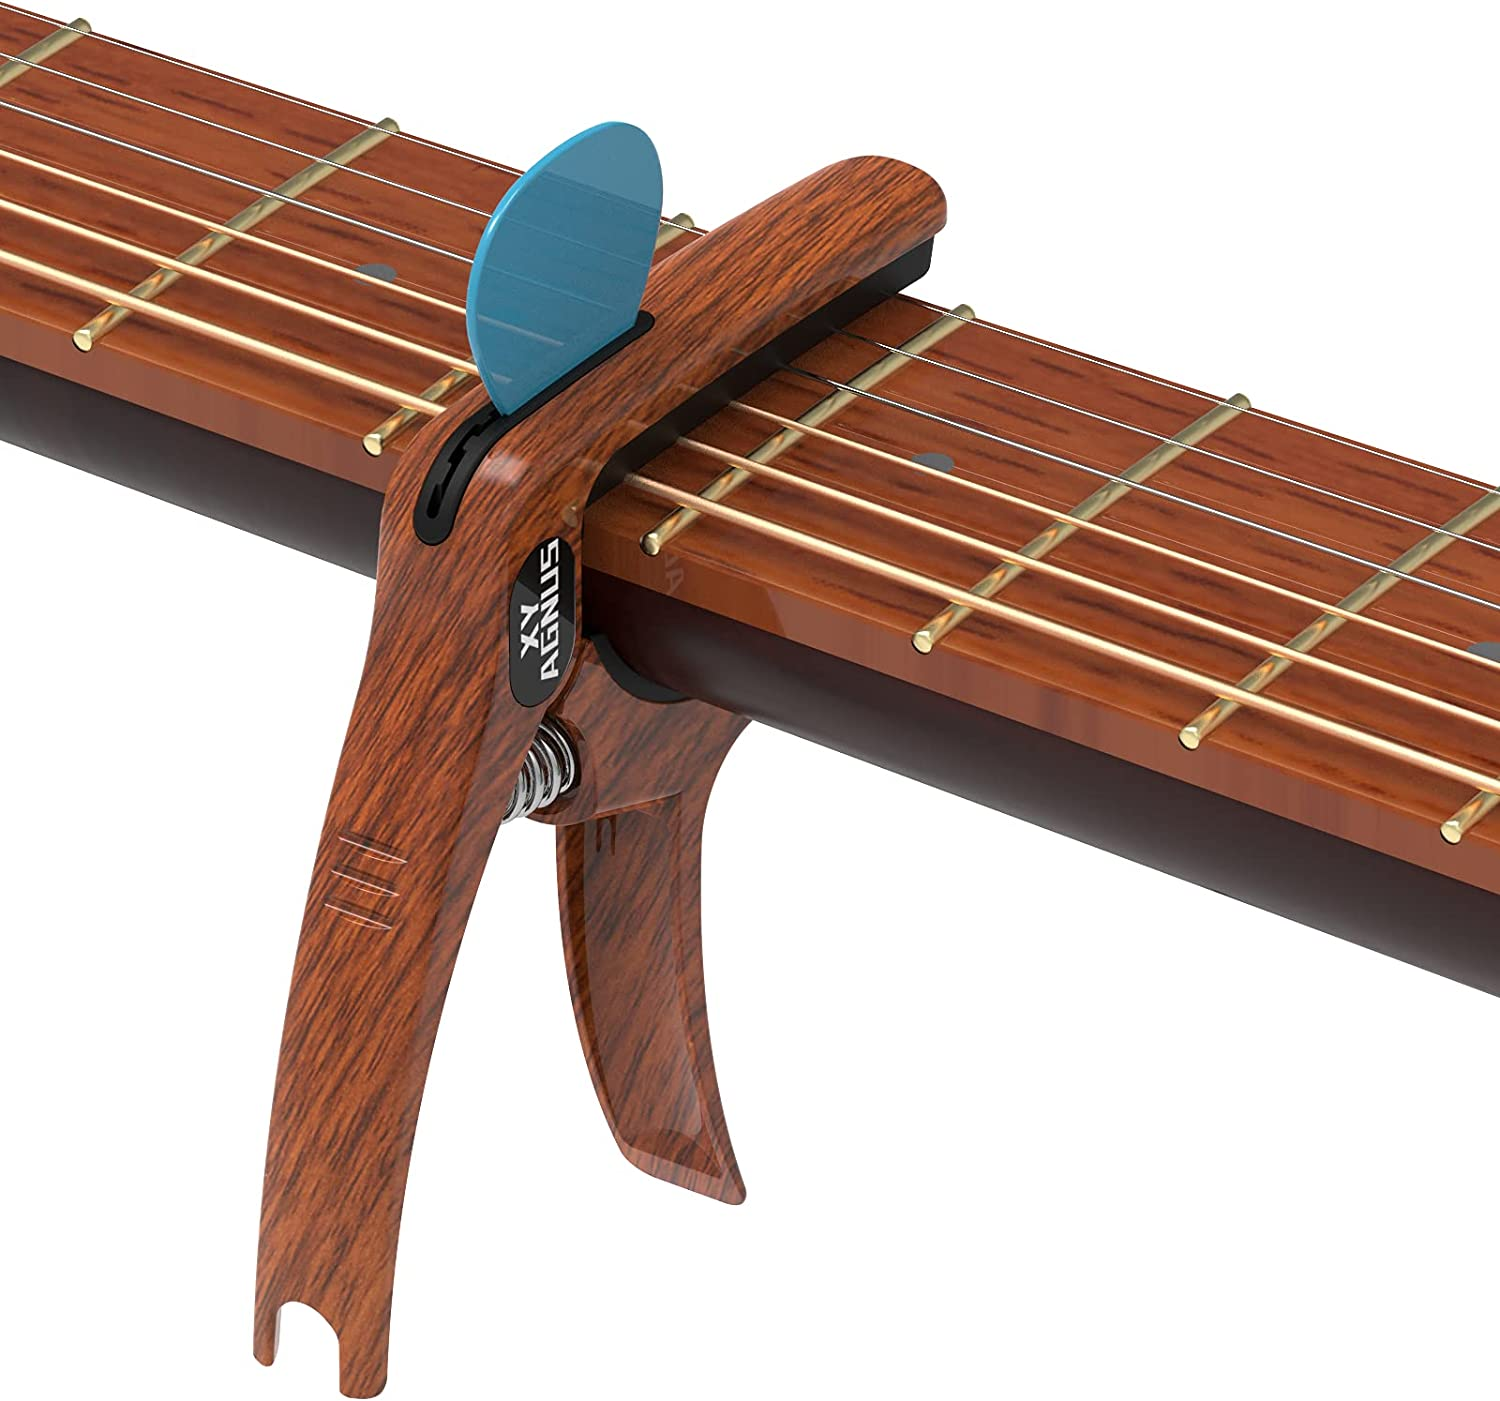 Xyagnus 3in1 Guitar Capo for Electric Acoustic Classical 70% Very popular! OFF Outlet Gui and